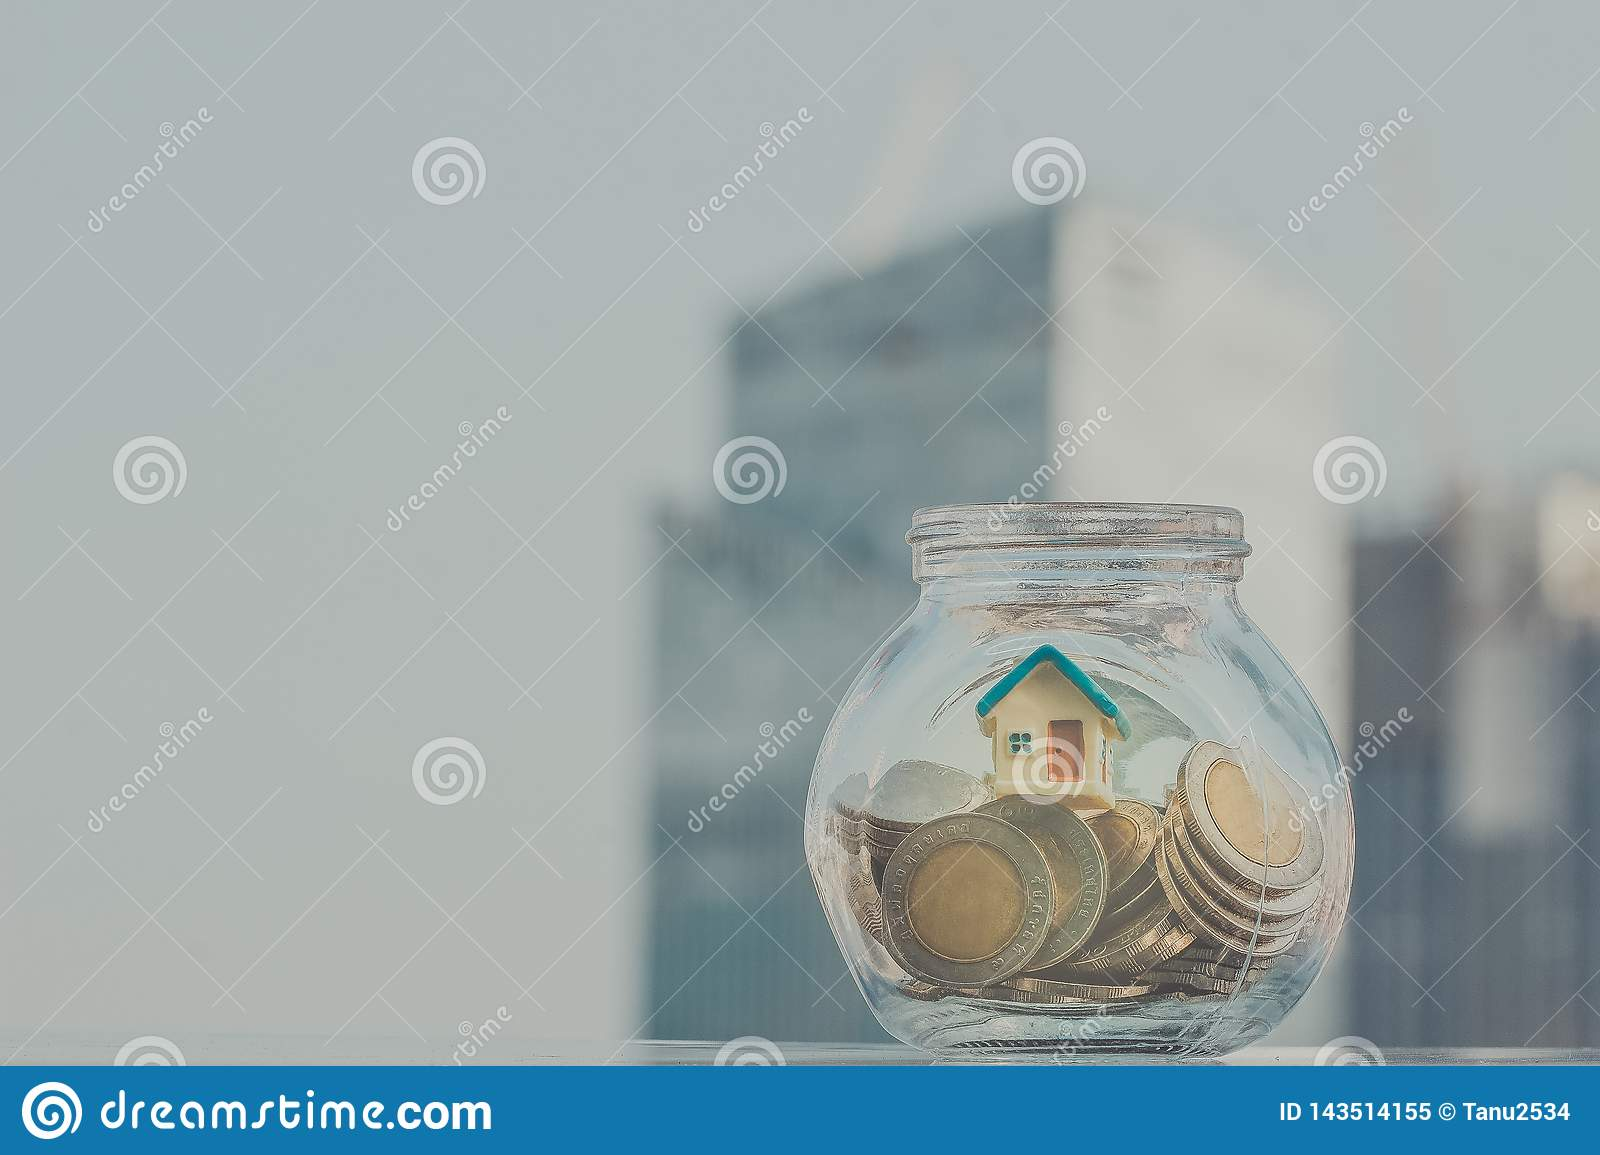 Home model put in the bottle. Business, financial, savings